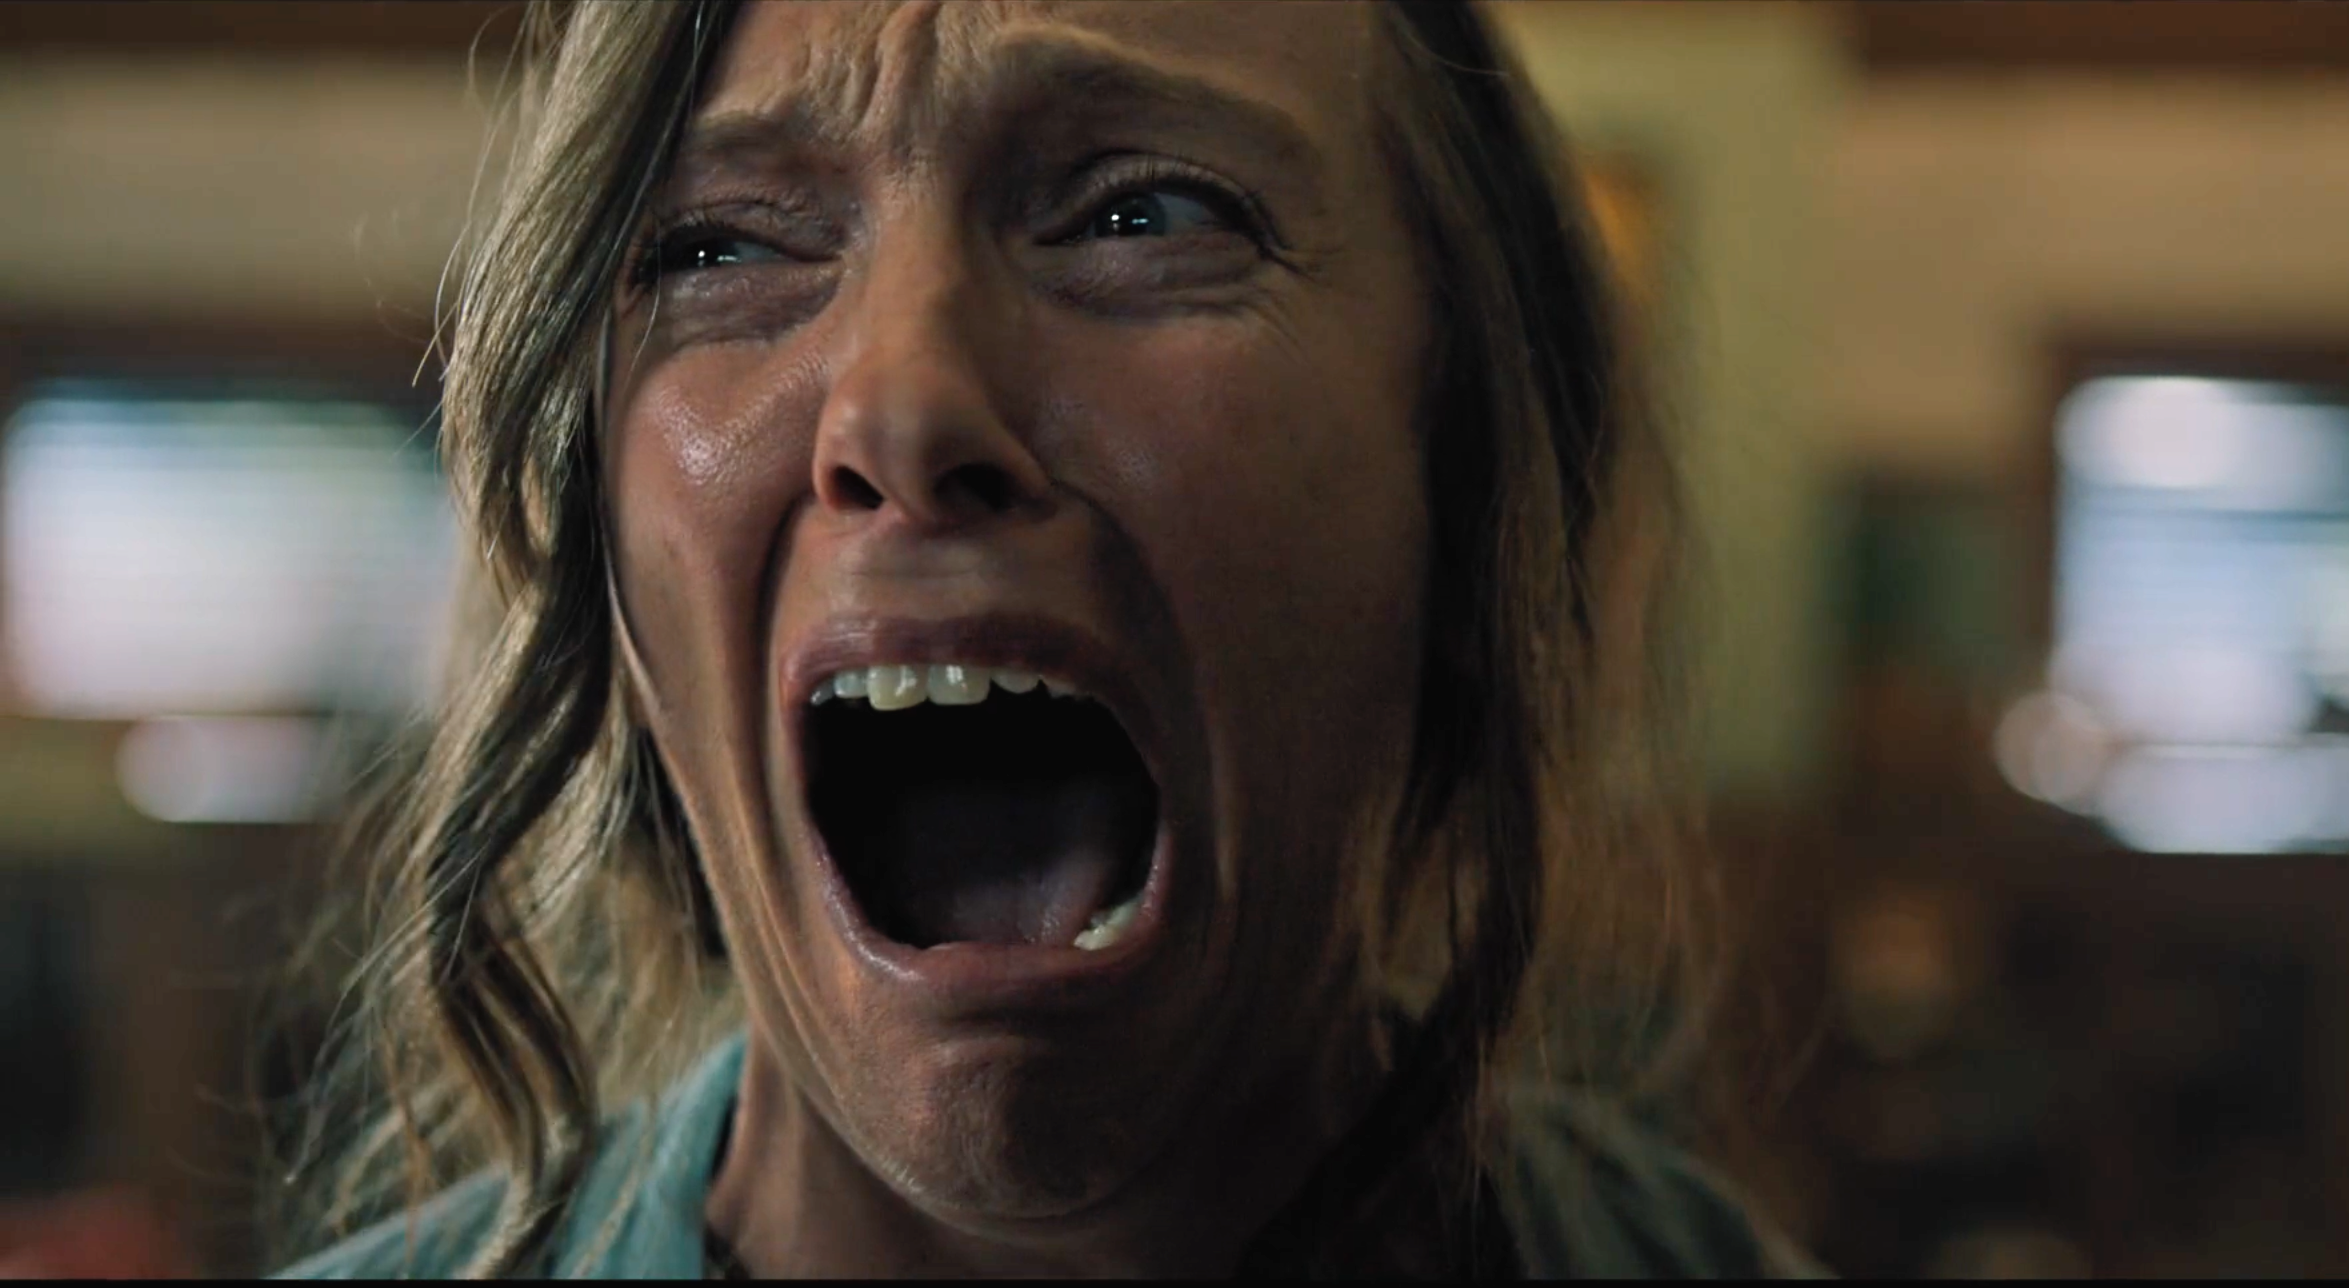 Hereditary is the terrifying arthouse horror film of the year